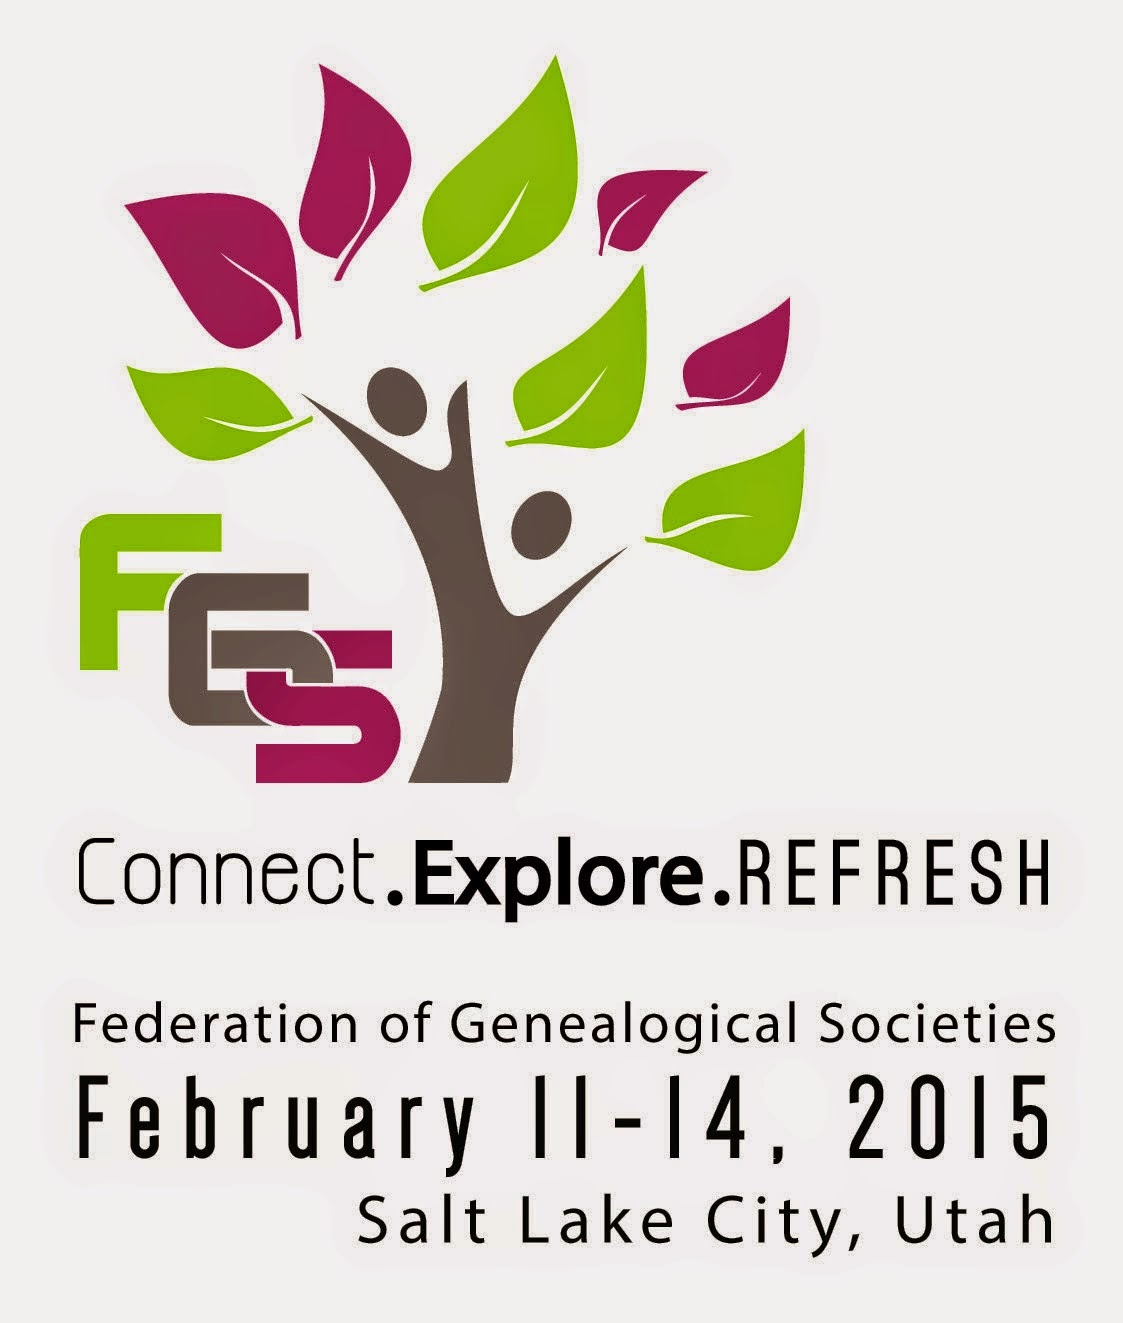 FGS 2015 Conference